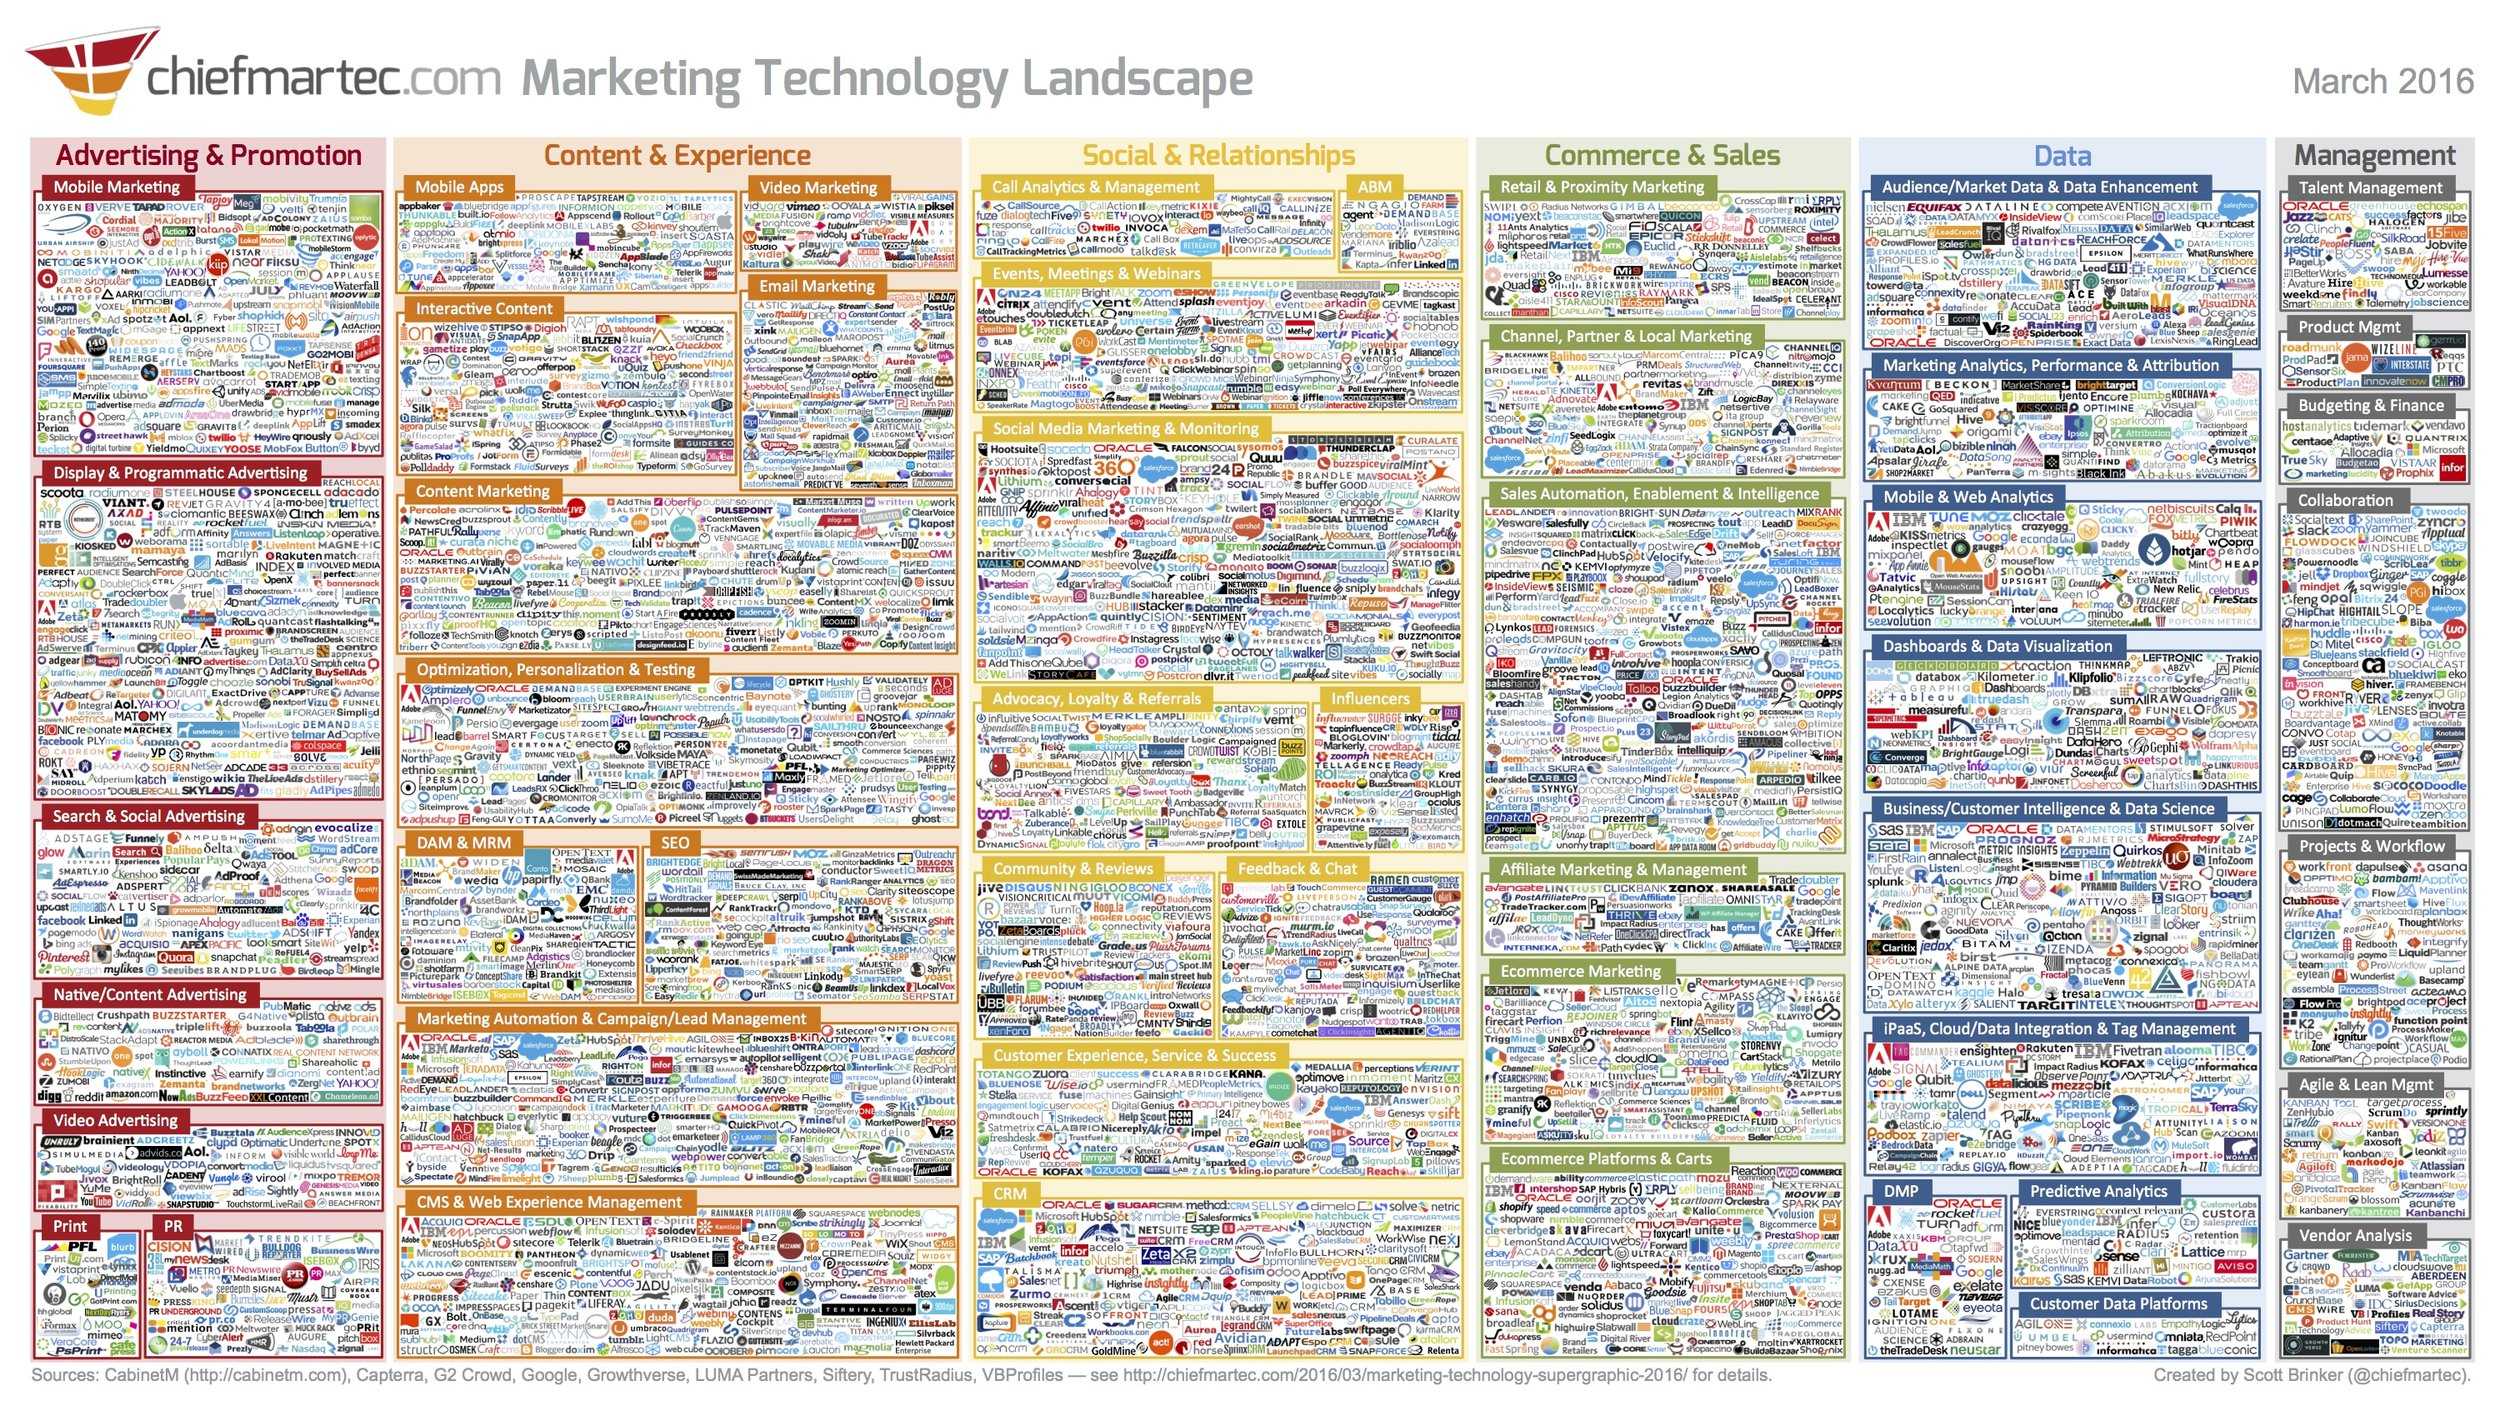 Kuva: Marketing Technology Landscape Supergraphic (2016) / Chief Marketing Technologist